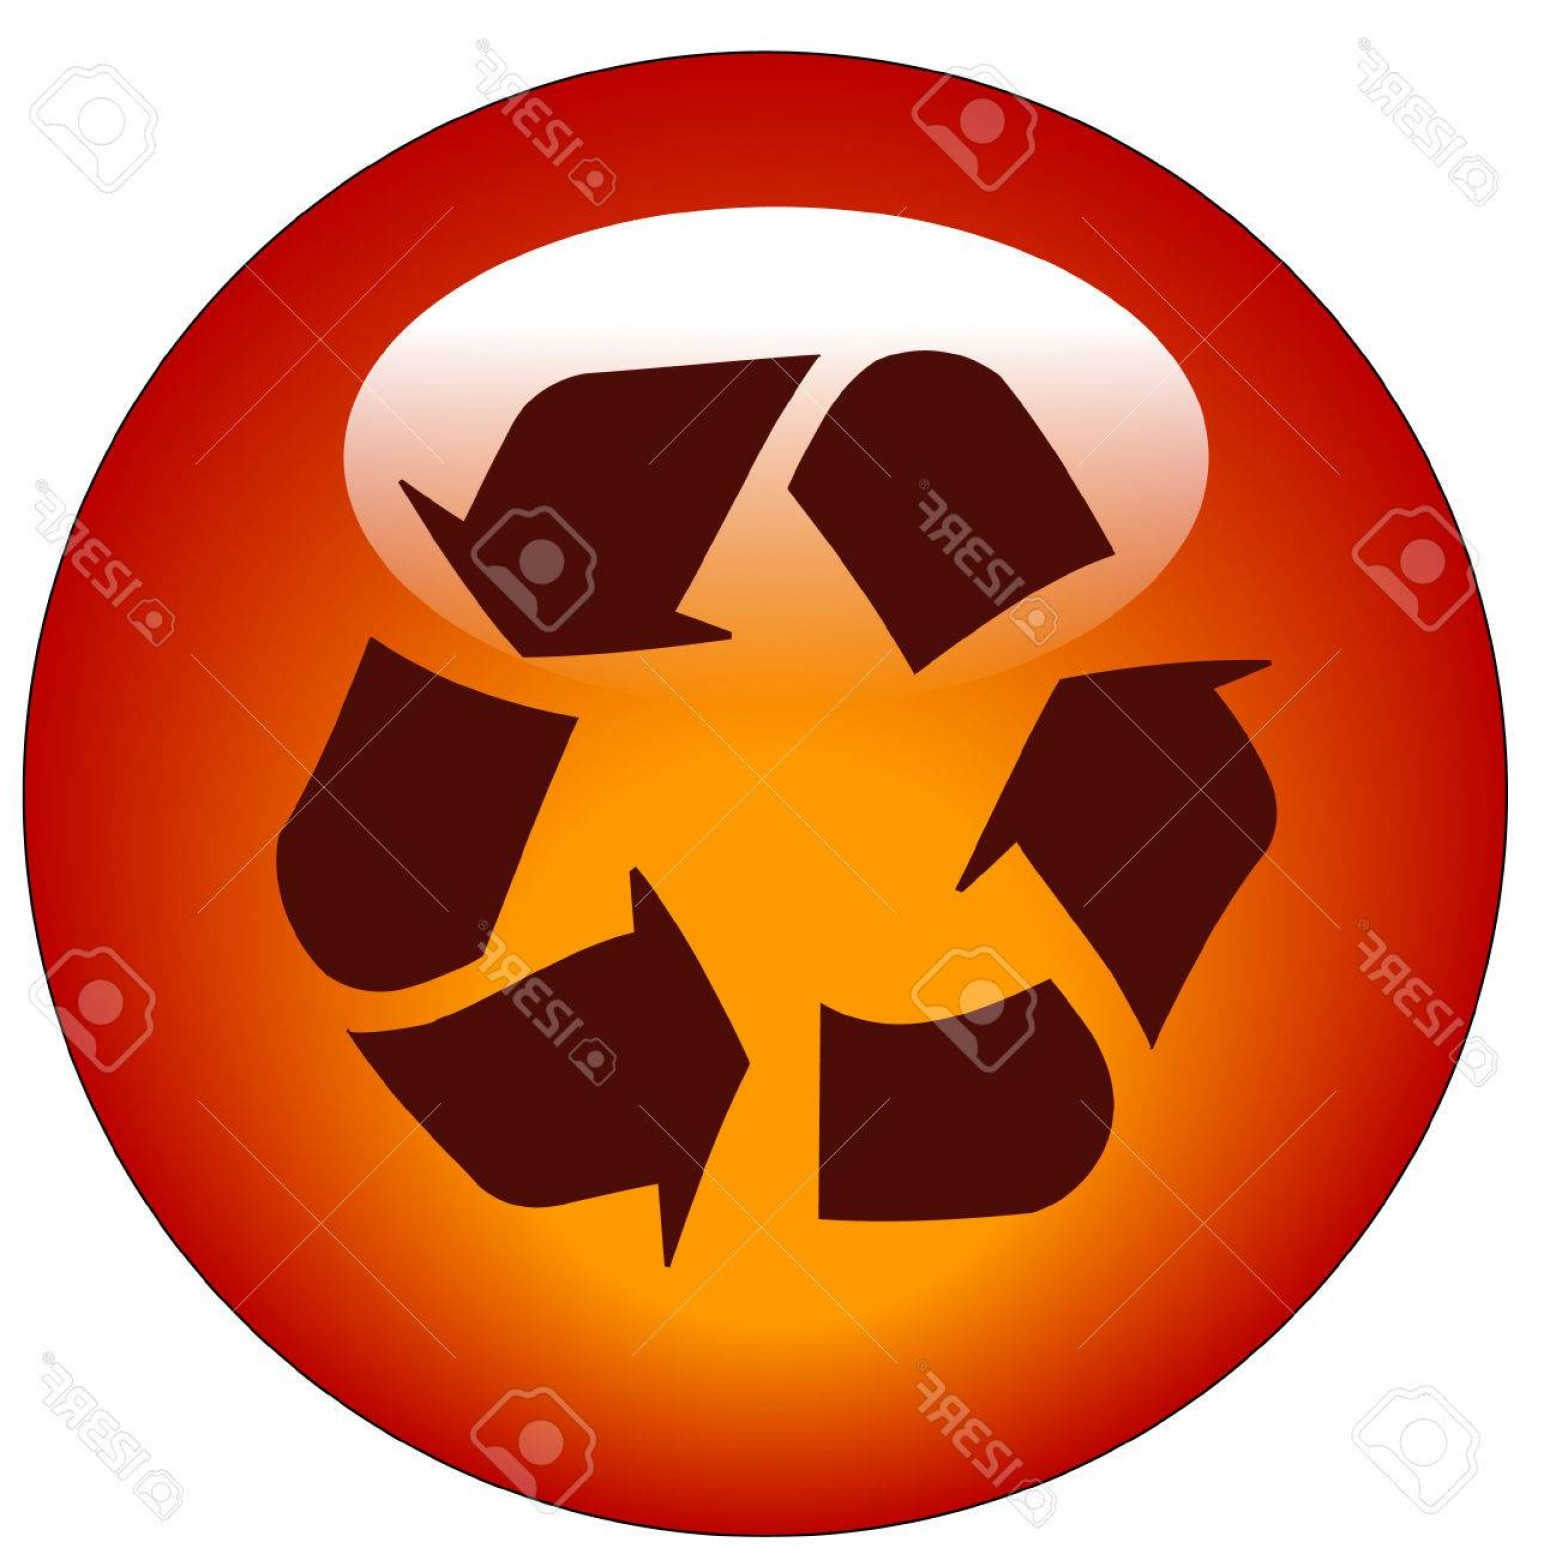 Recycle Icon Vector Red: Photored Reduce Reuse Recycle Web Button Or Icon Vector